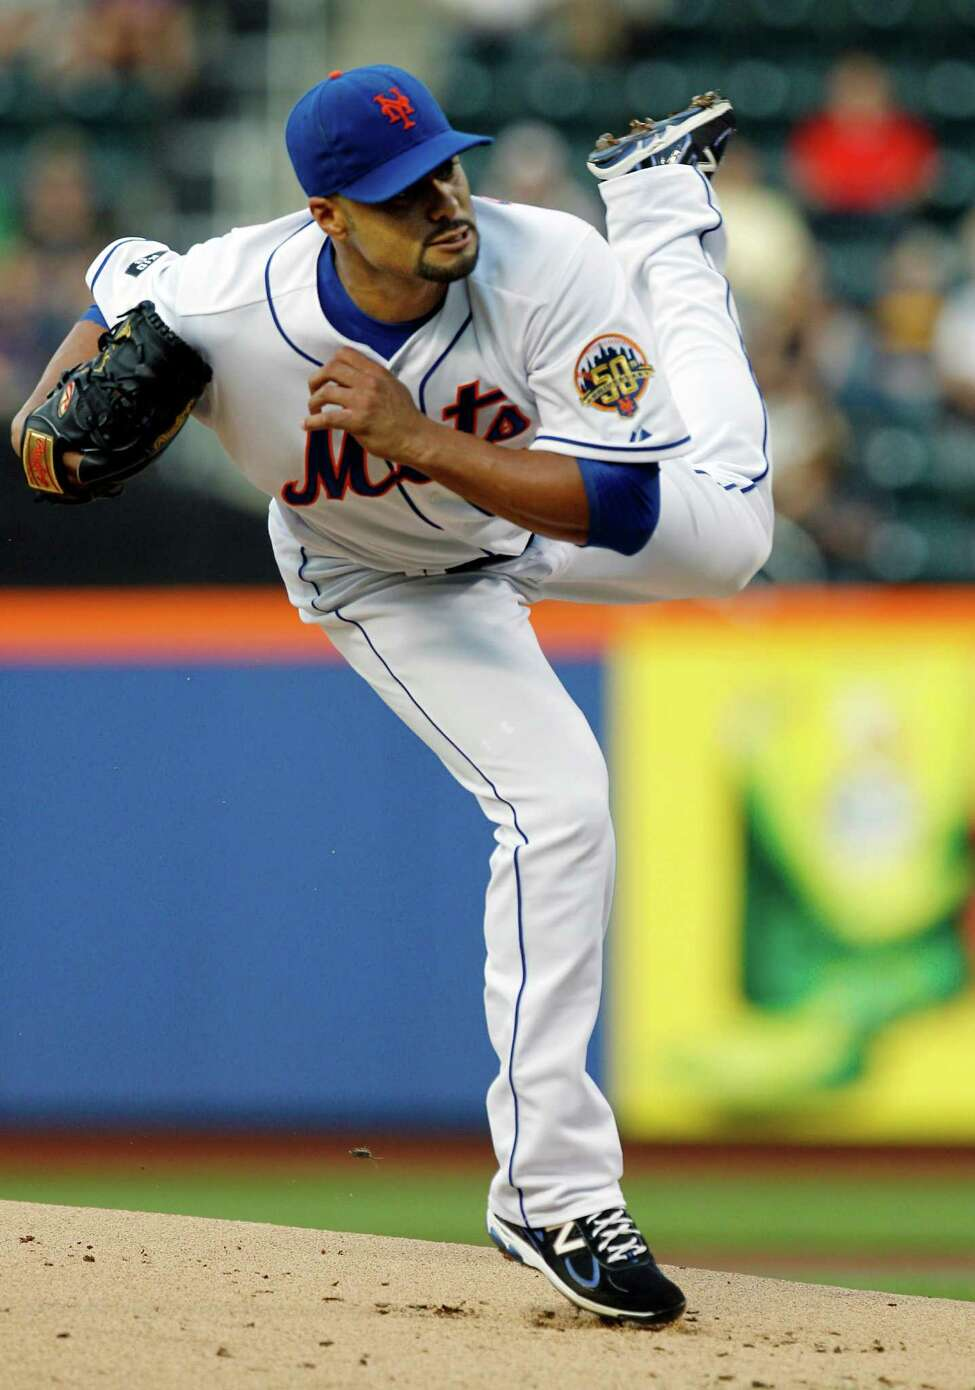 New York Mets starting pitcher Johan Santana (57) delivers against the Cincinnati Reds in the first inning of their baseball game at Citi Field in New York, Wednesday, May 16, 2012. (AP Photo/Kathy Willens)